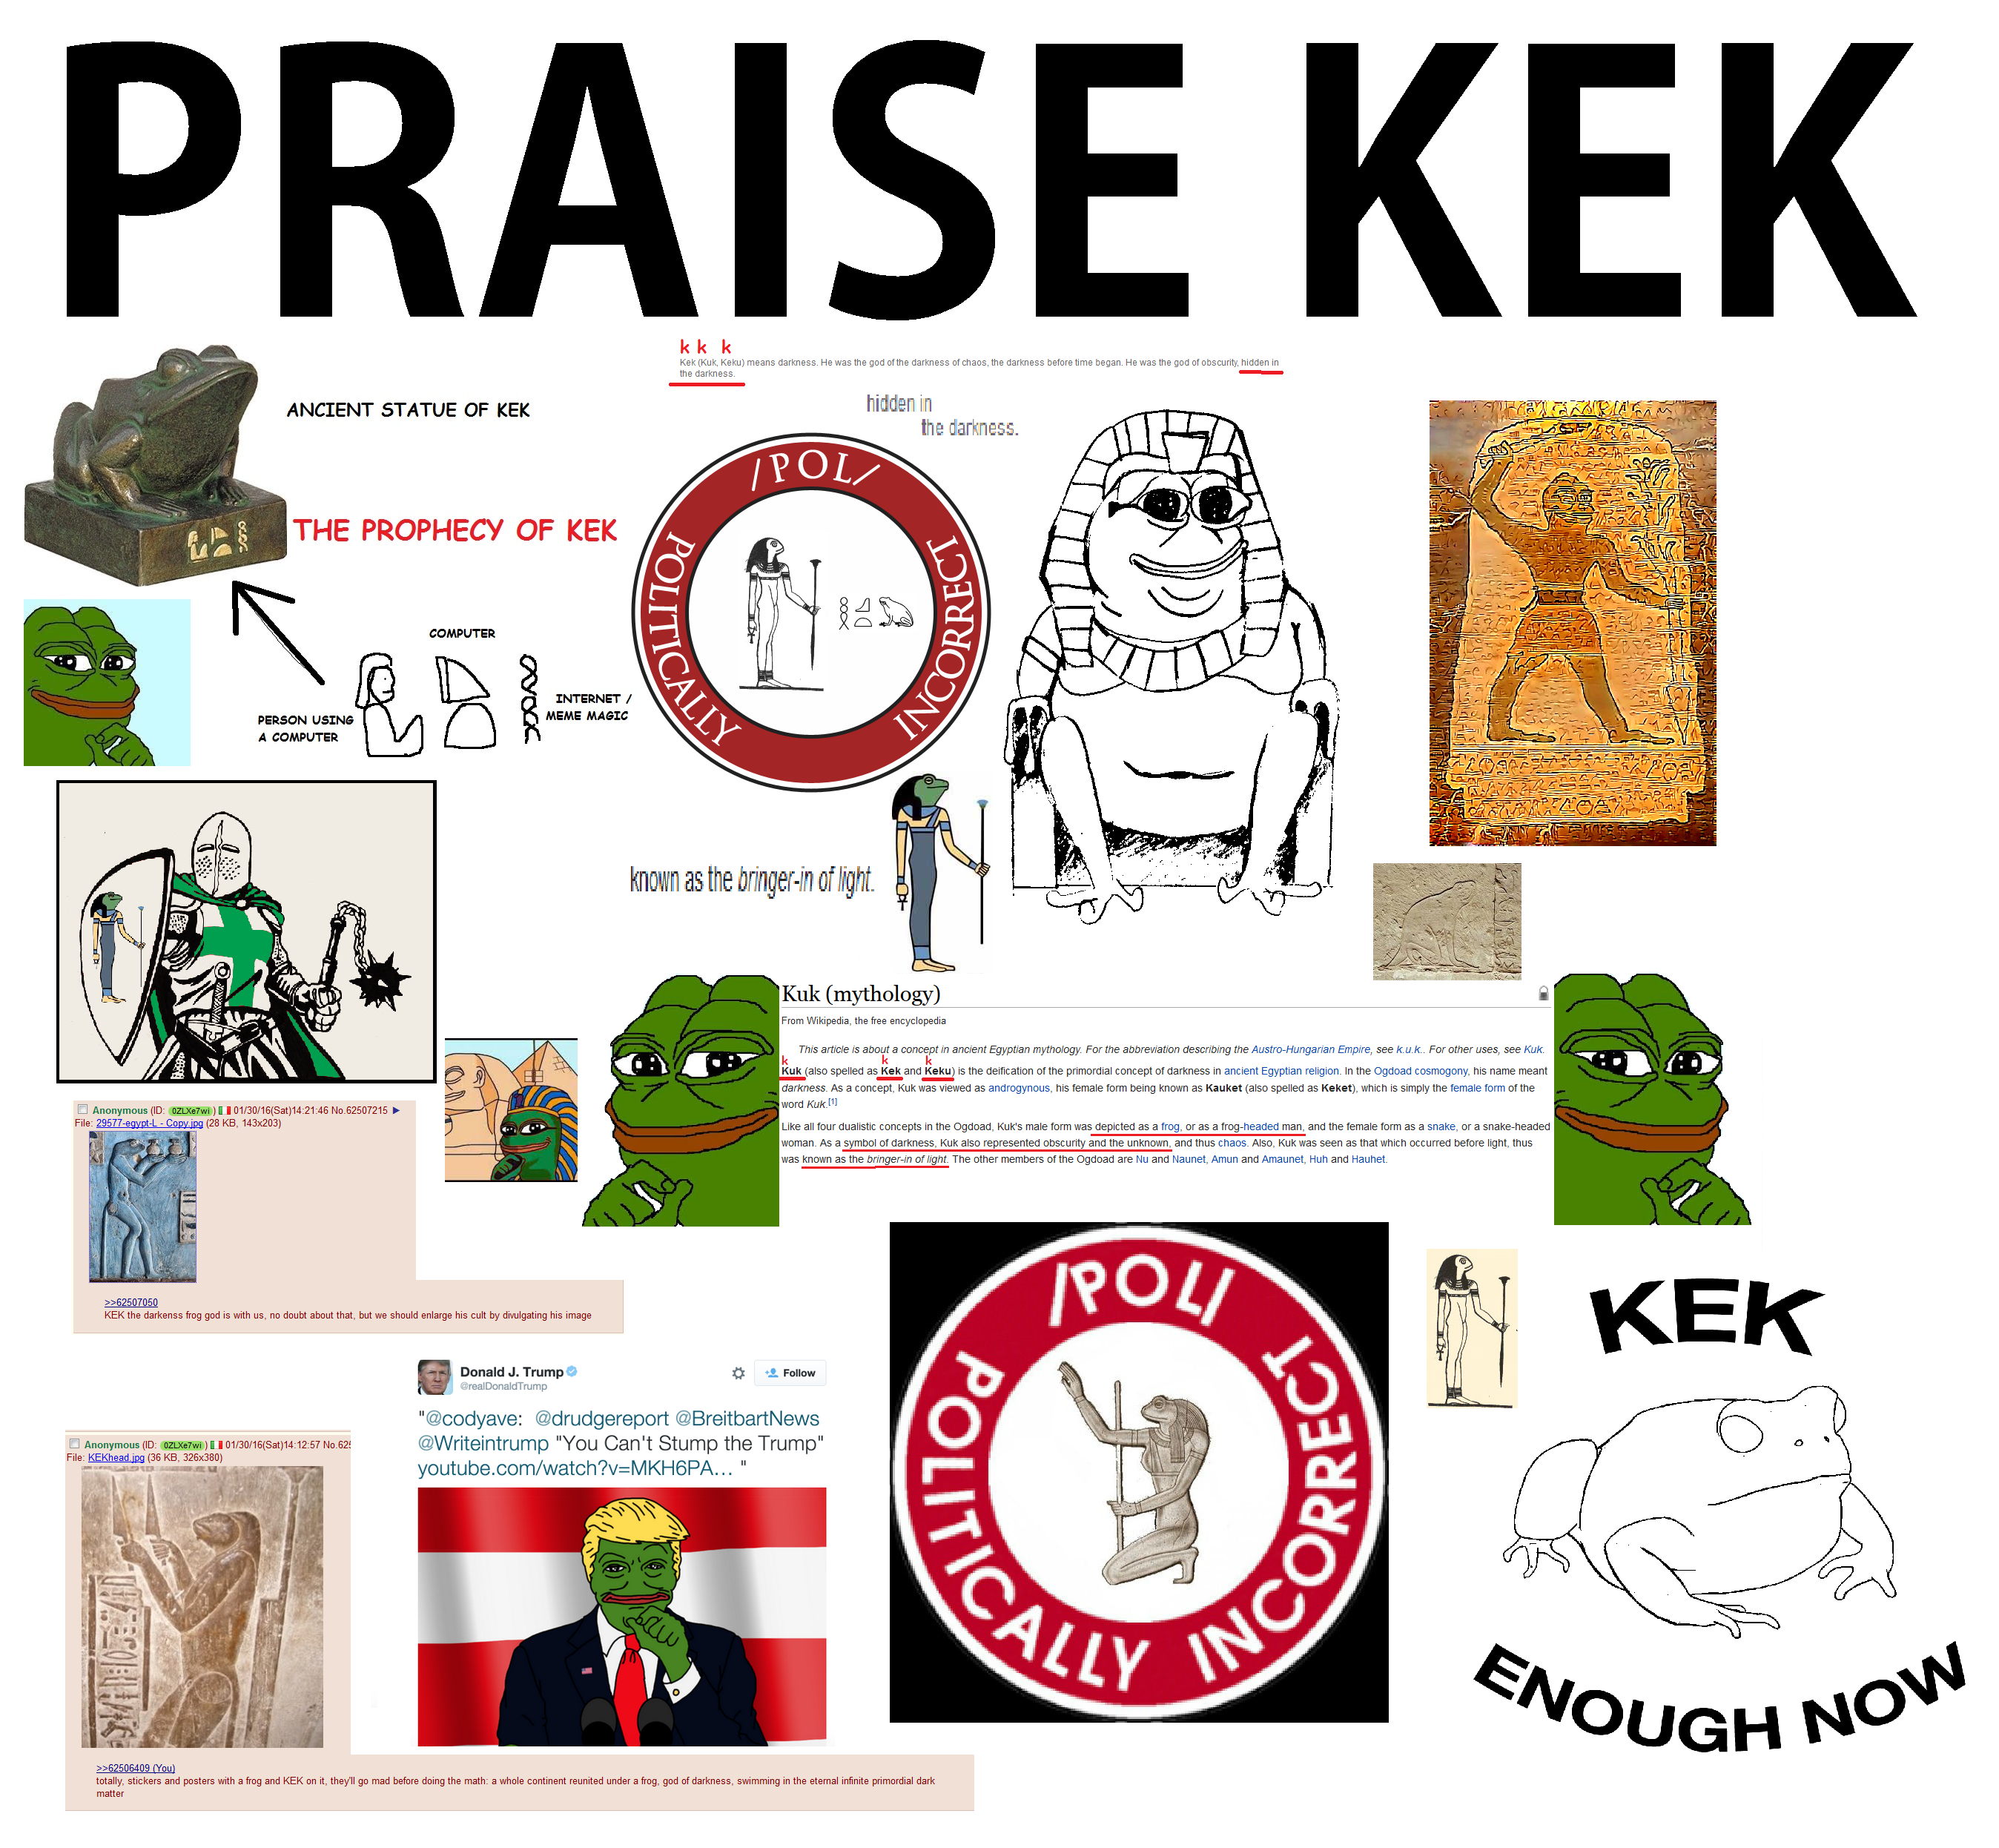 d0e trump's occult online supporters believe 'meme magic' got him